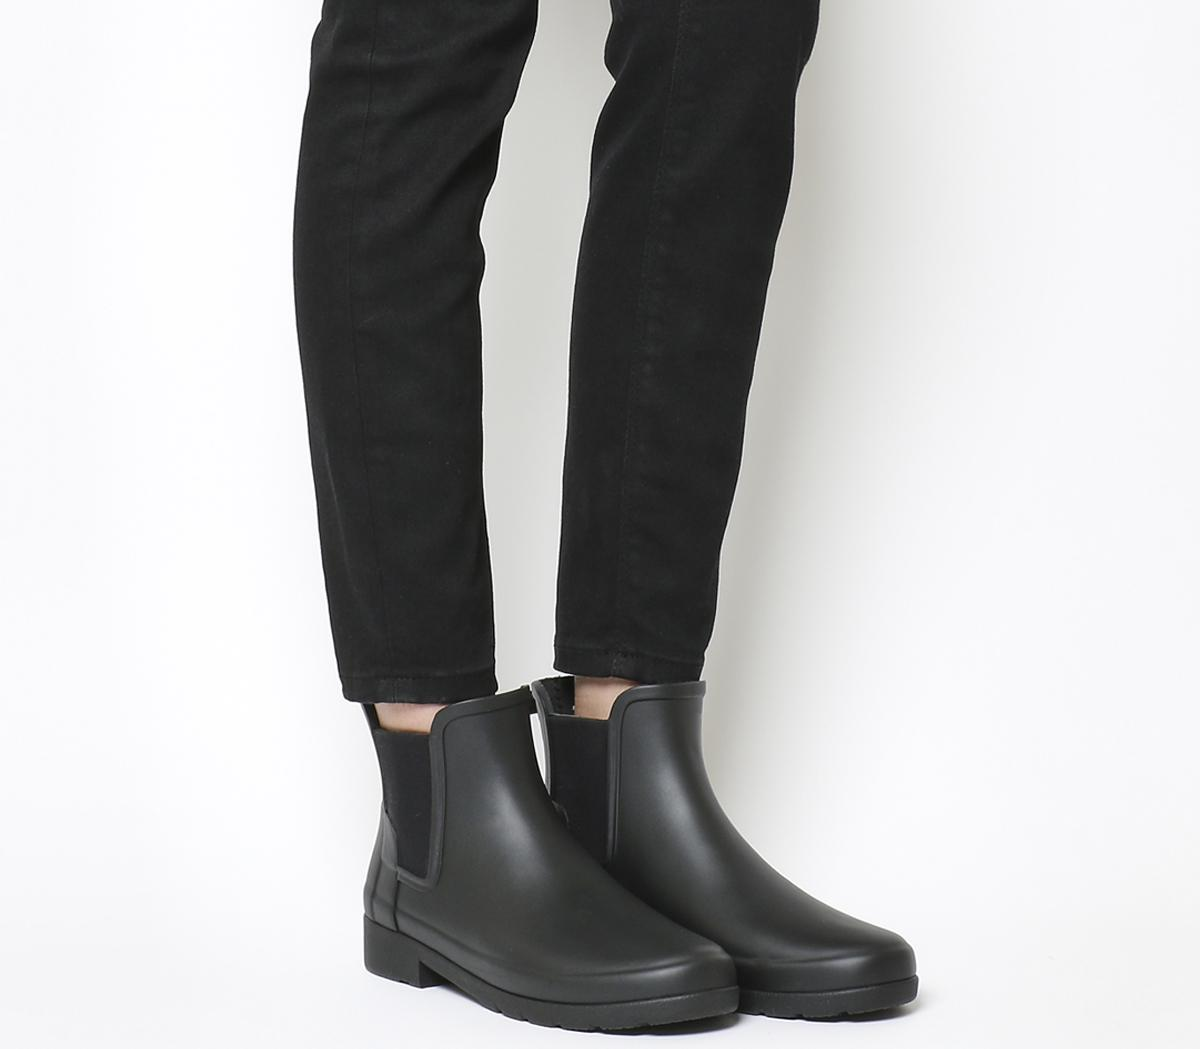 Hunter Original Refined Chelsea Black Matte Ankle Boots Women's 'original refined' black chelsea boots with a matte finish and a slim silhouette from british heritage footwear label hunter. original refined chelsea